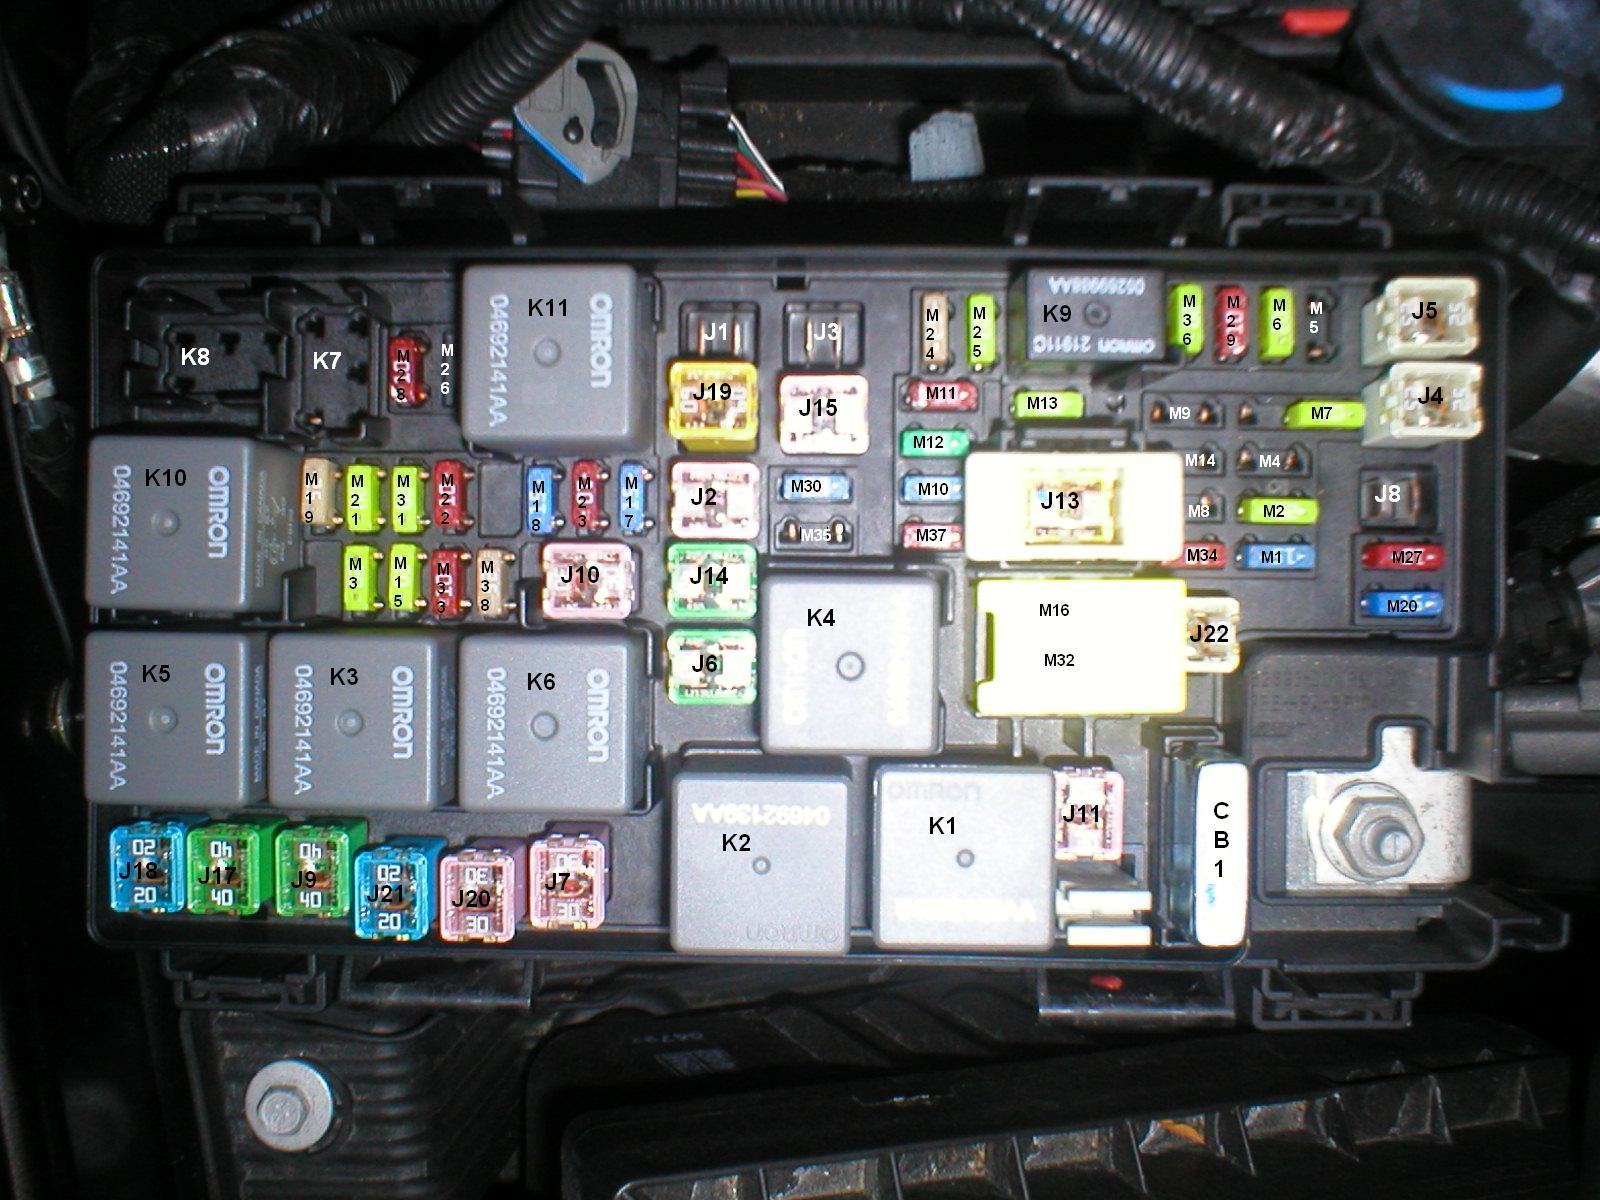 hight resolution of jeep jk fuse box map layout diagram jeepforum com eagle talon fuse box jeep tj fuse